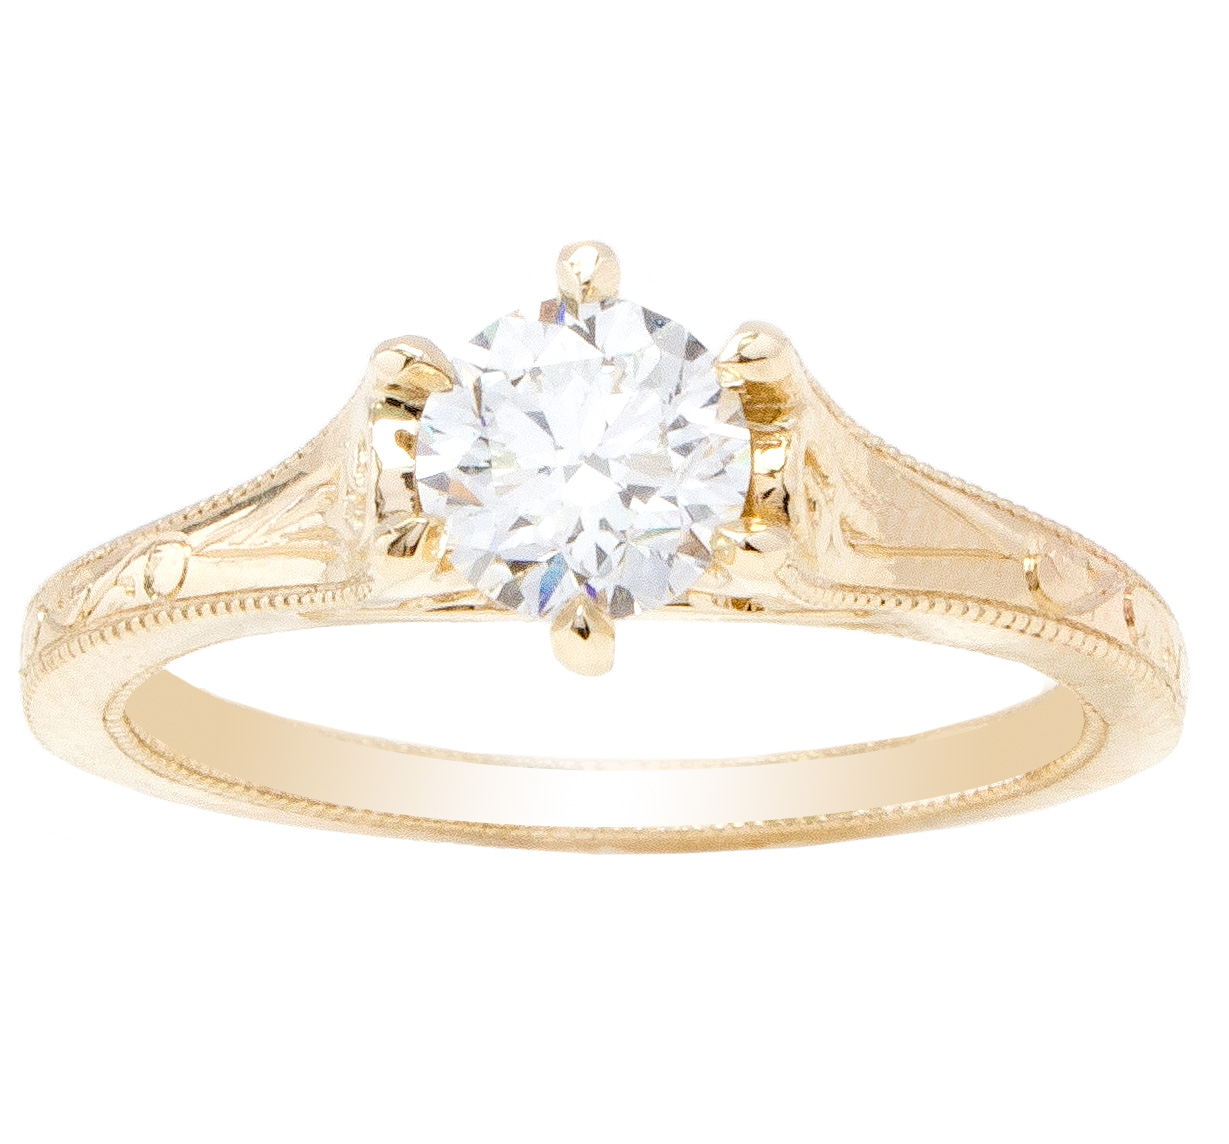 Unique Custom Solitaire Engagement Ring in yellow gold